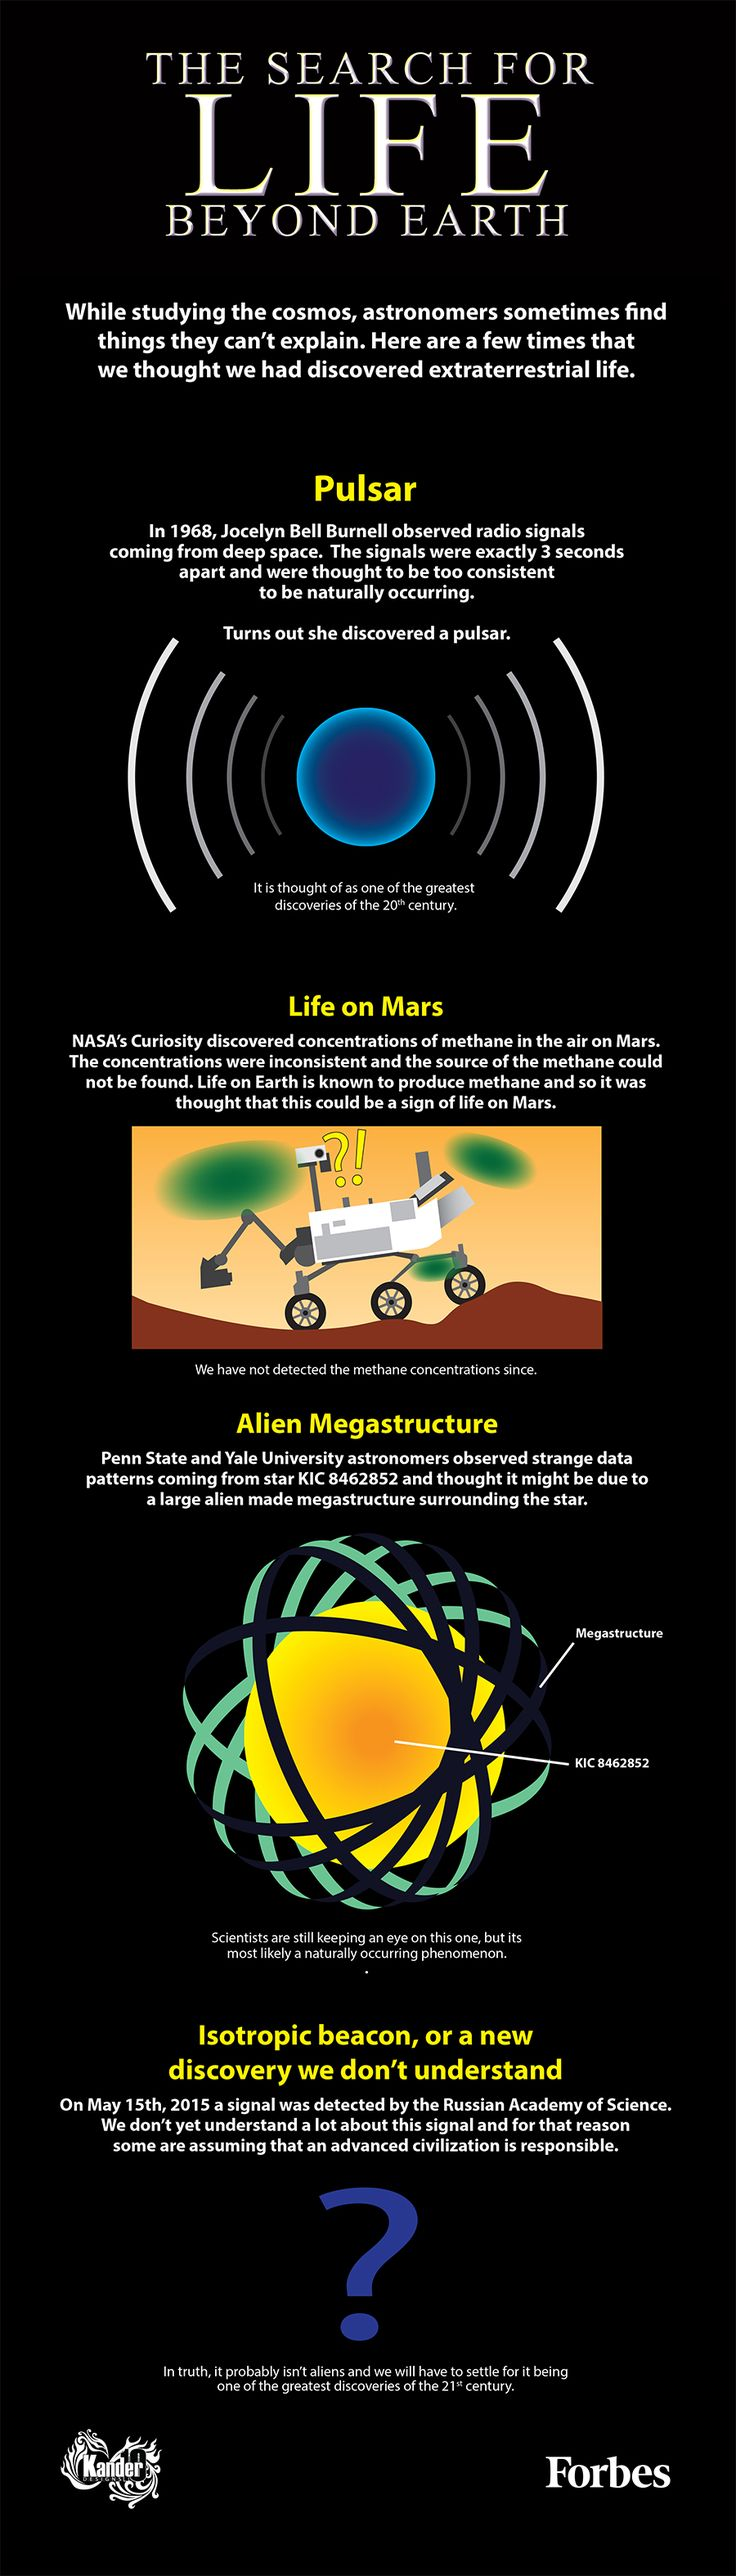 The Search For Life: Have We Found Proof Of Alien Life? [Infographic]